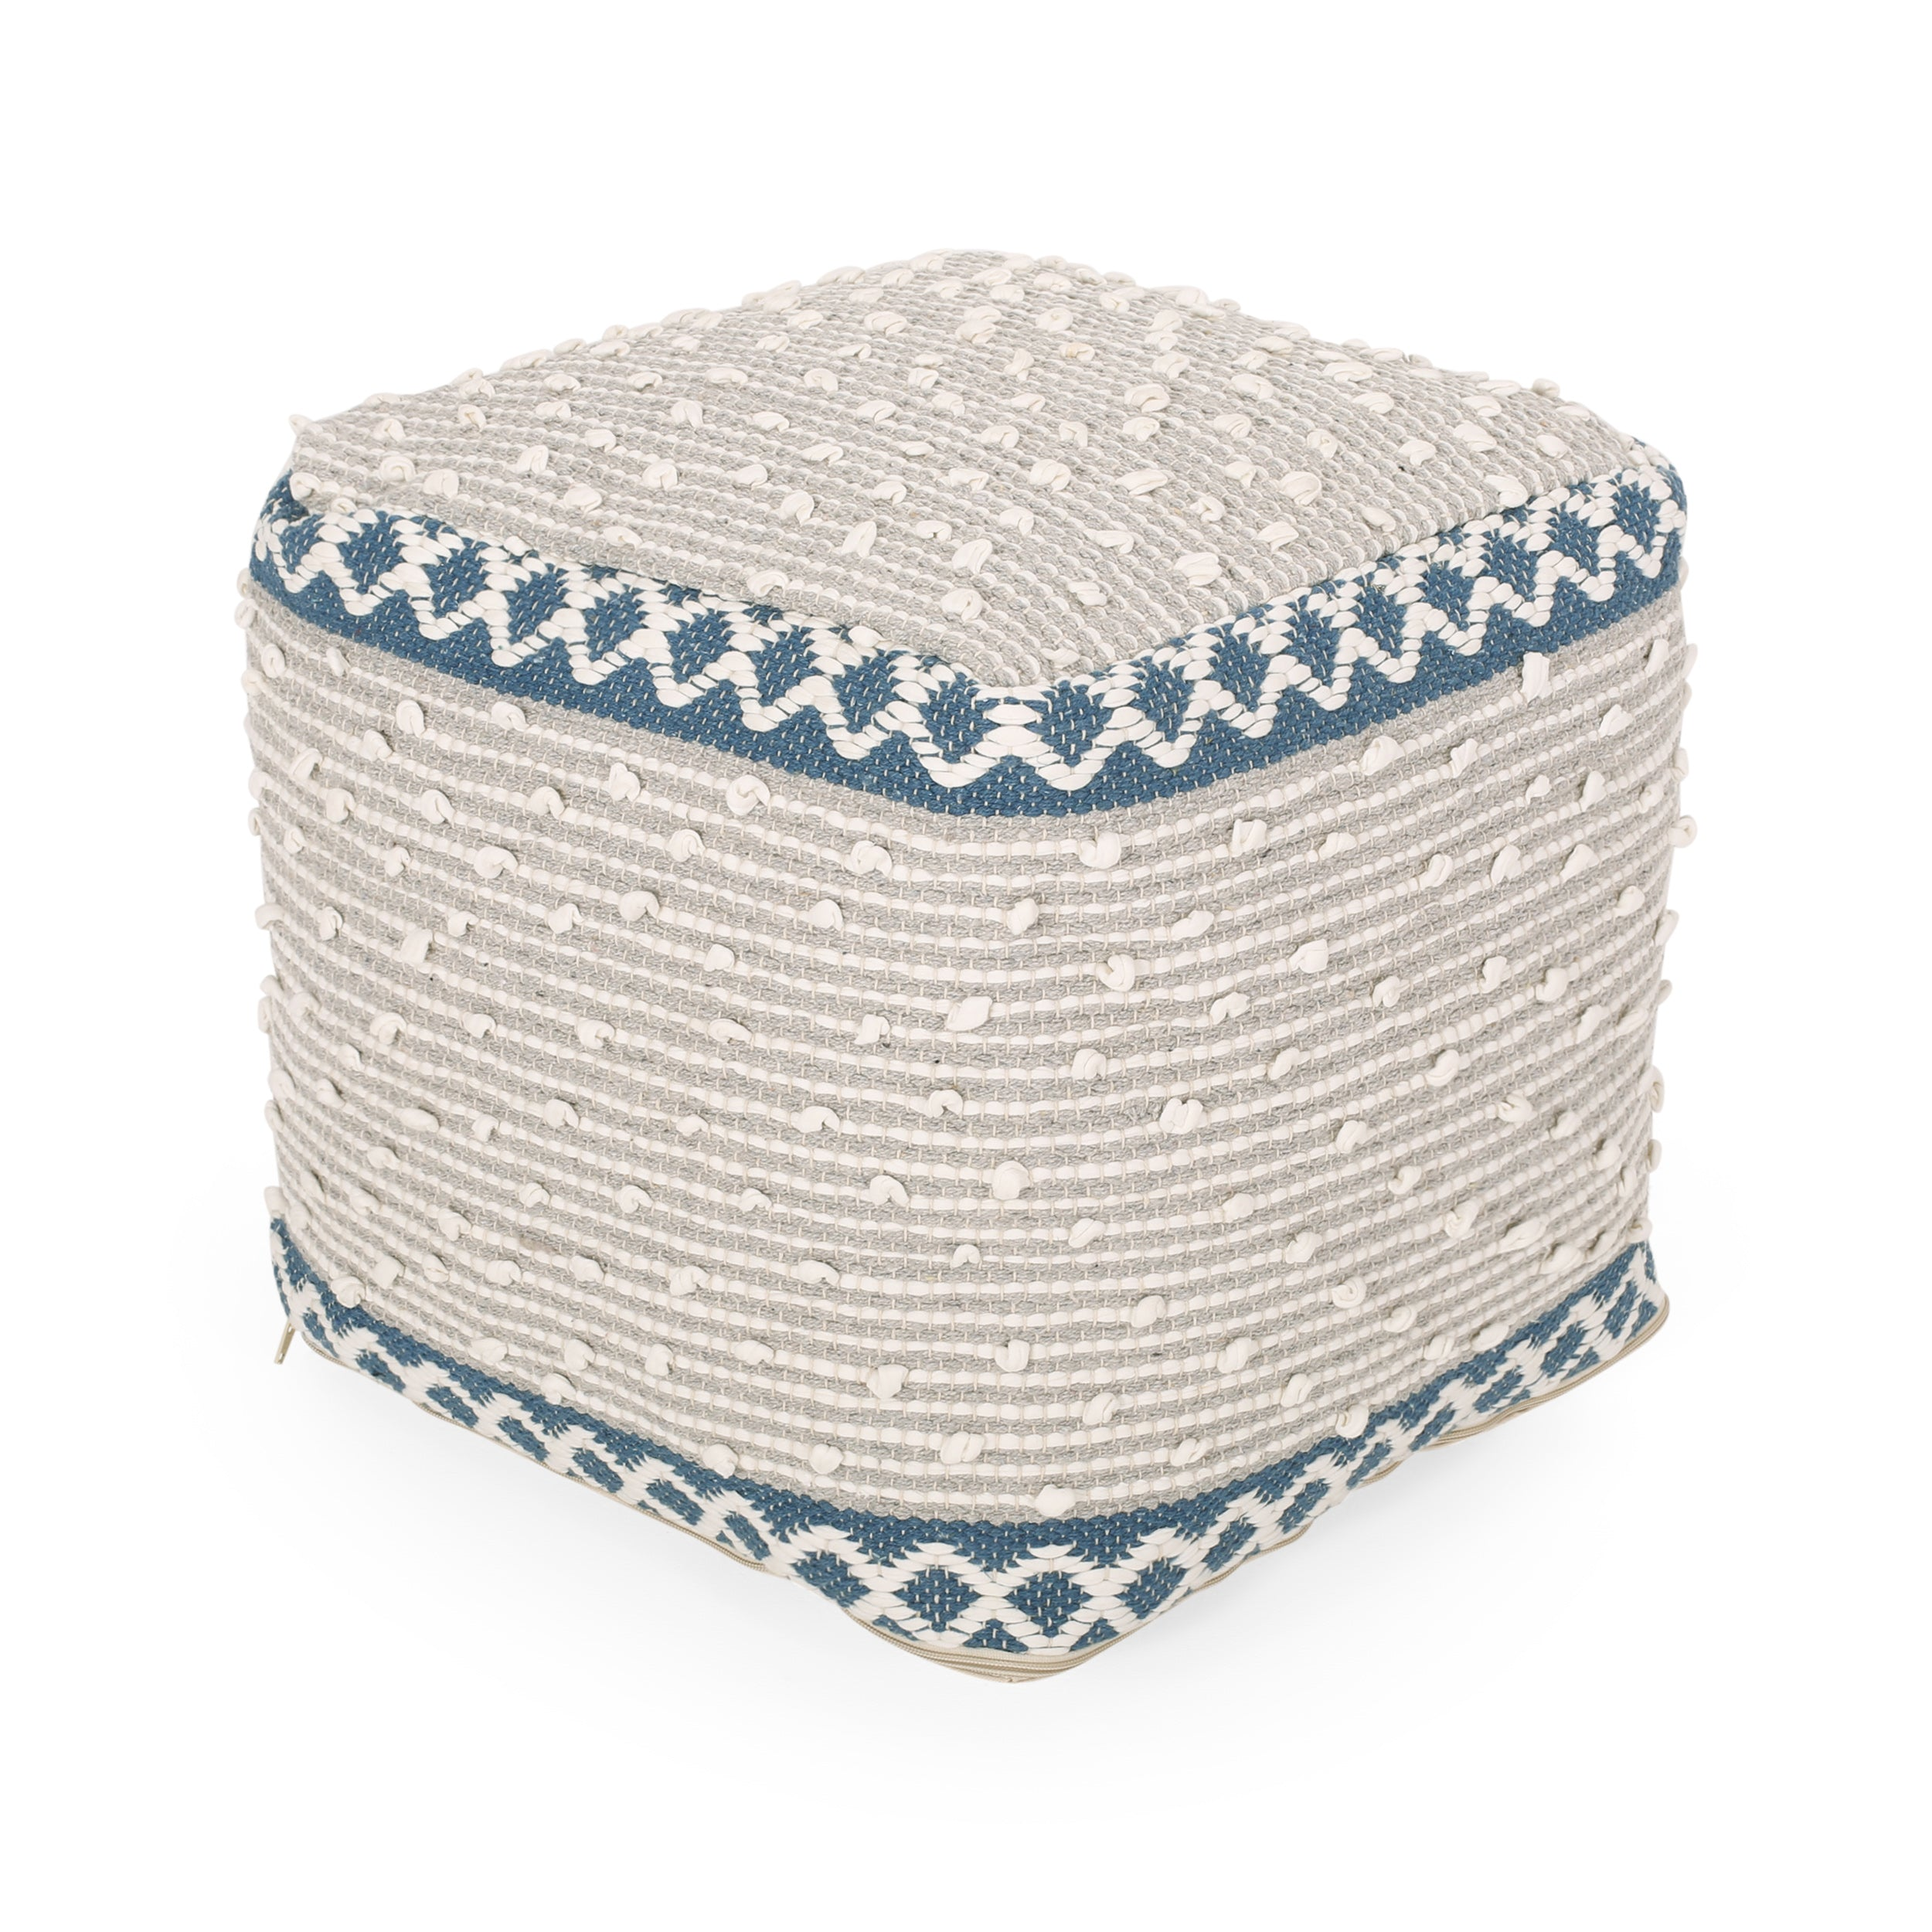 Amiyrah Hand Crafted Cotton Cube Pouf Default Title